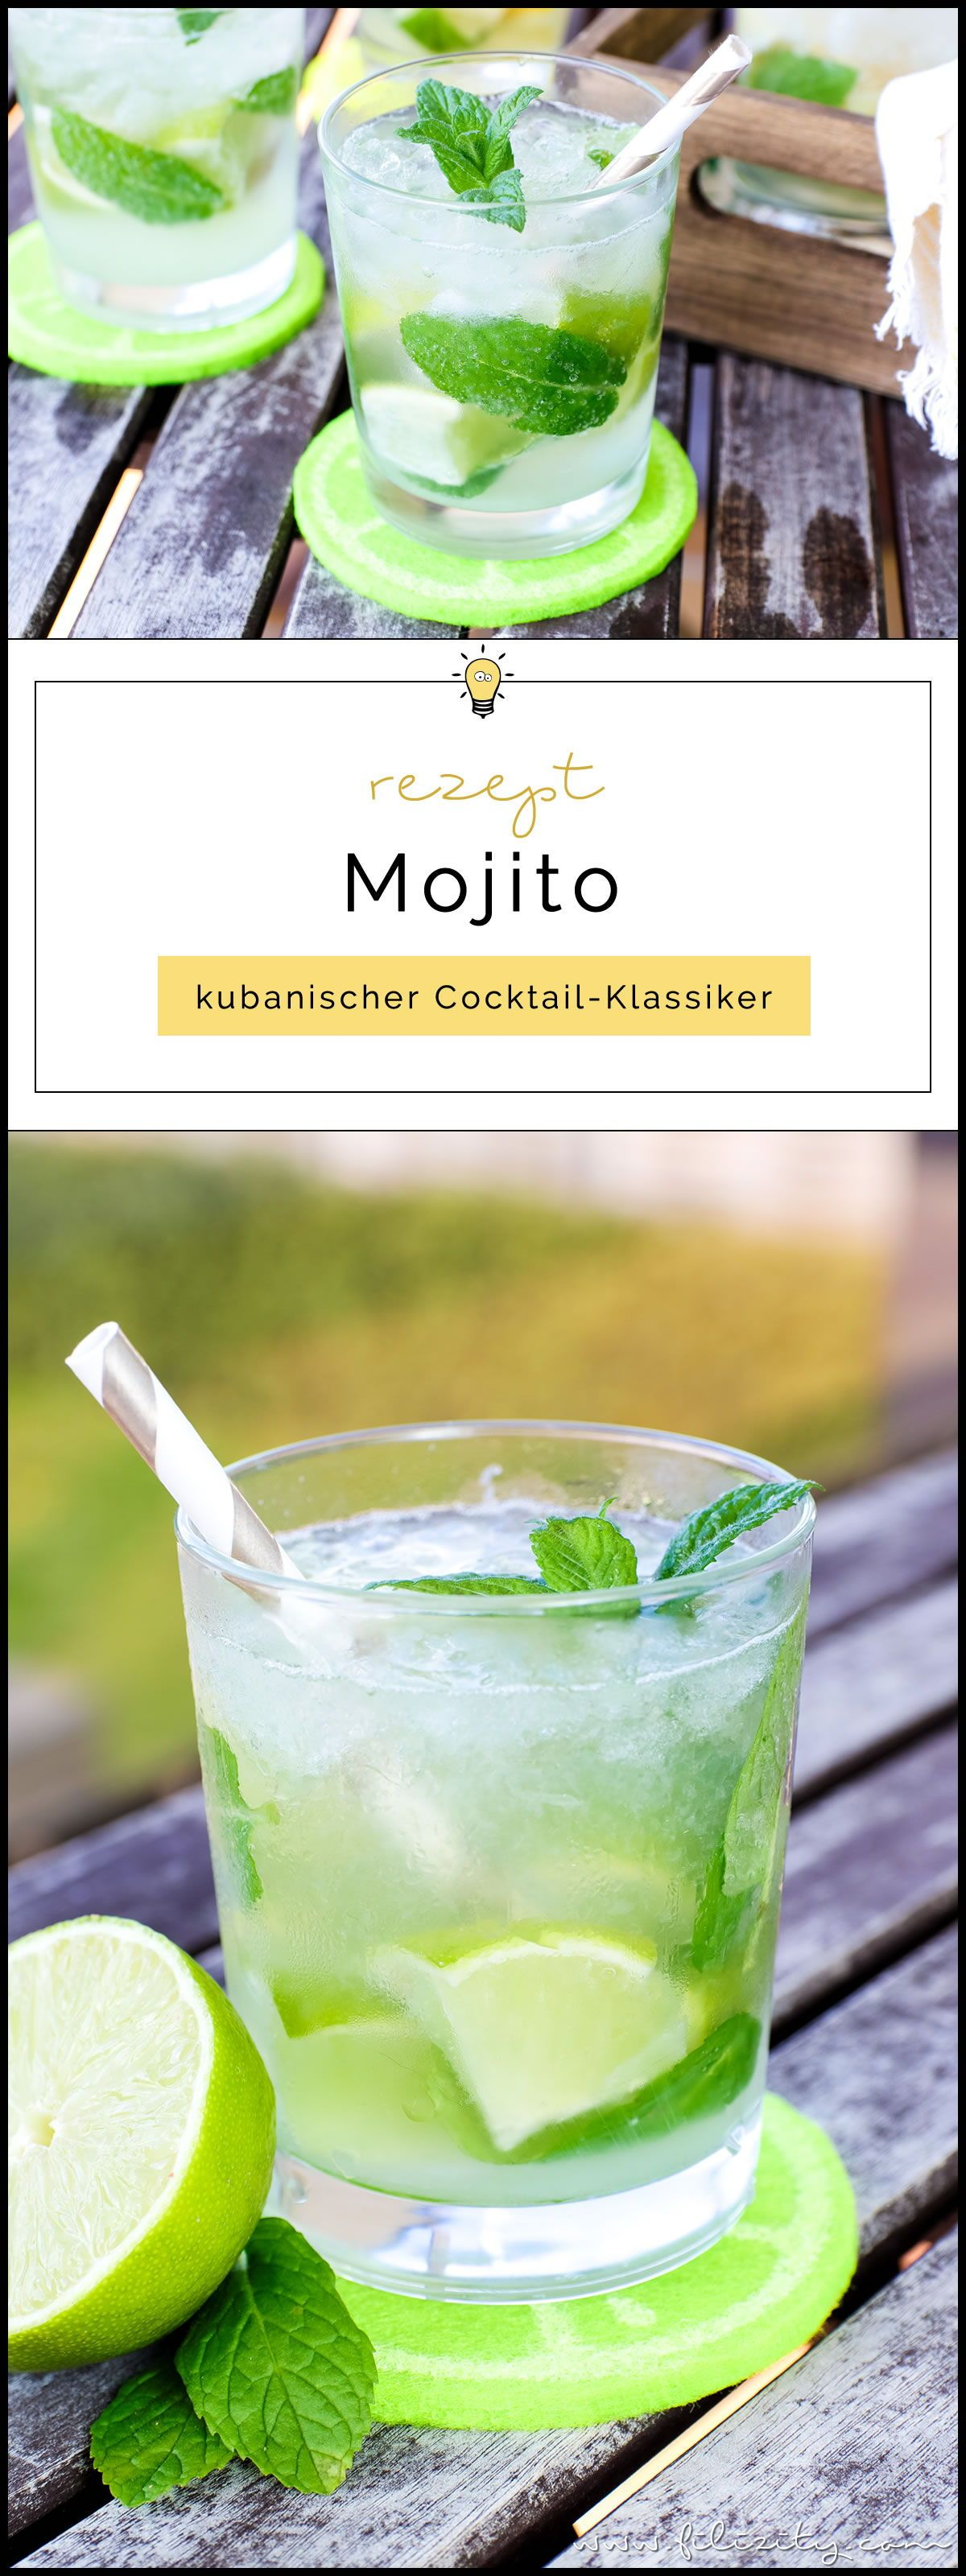 Mojito Rezept - Kubanischer Cocktail-Klassiker #cocktaildrinks